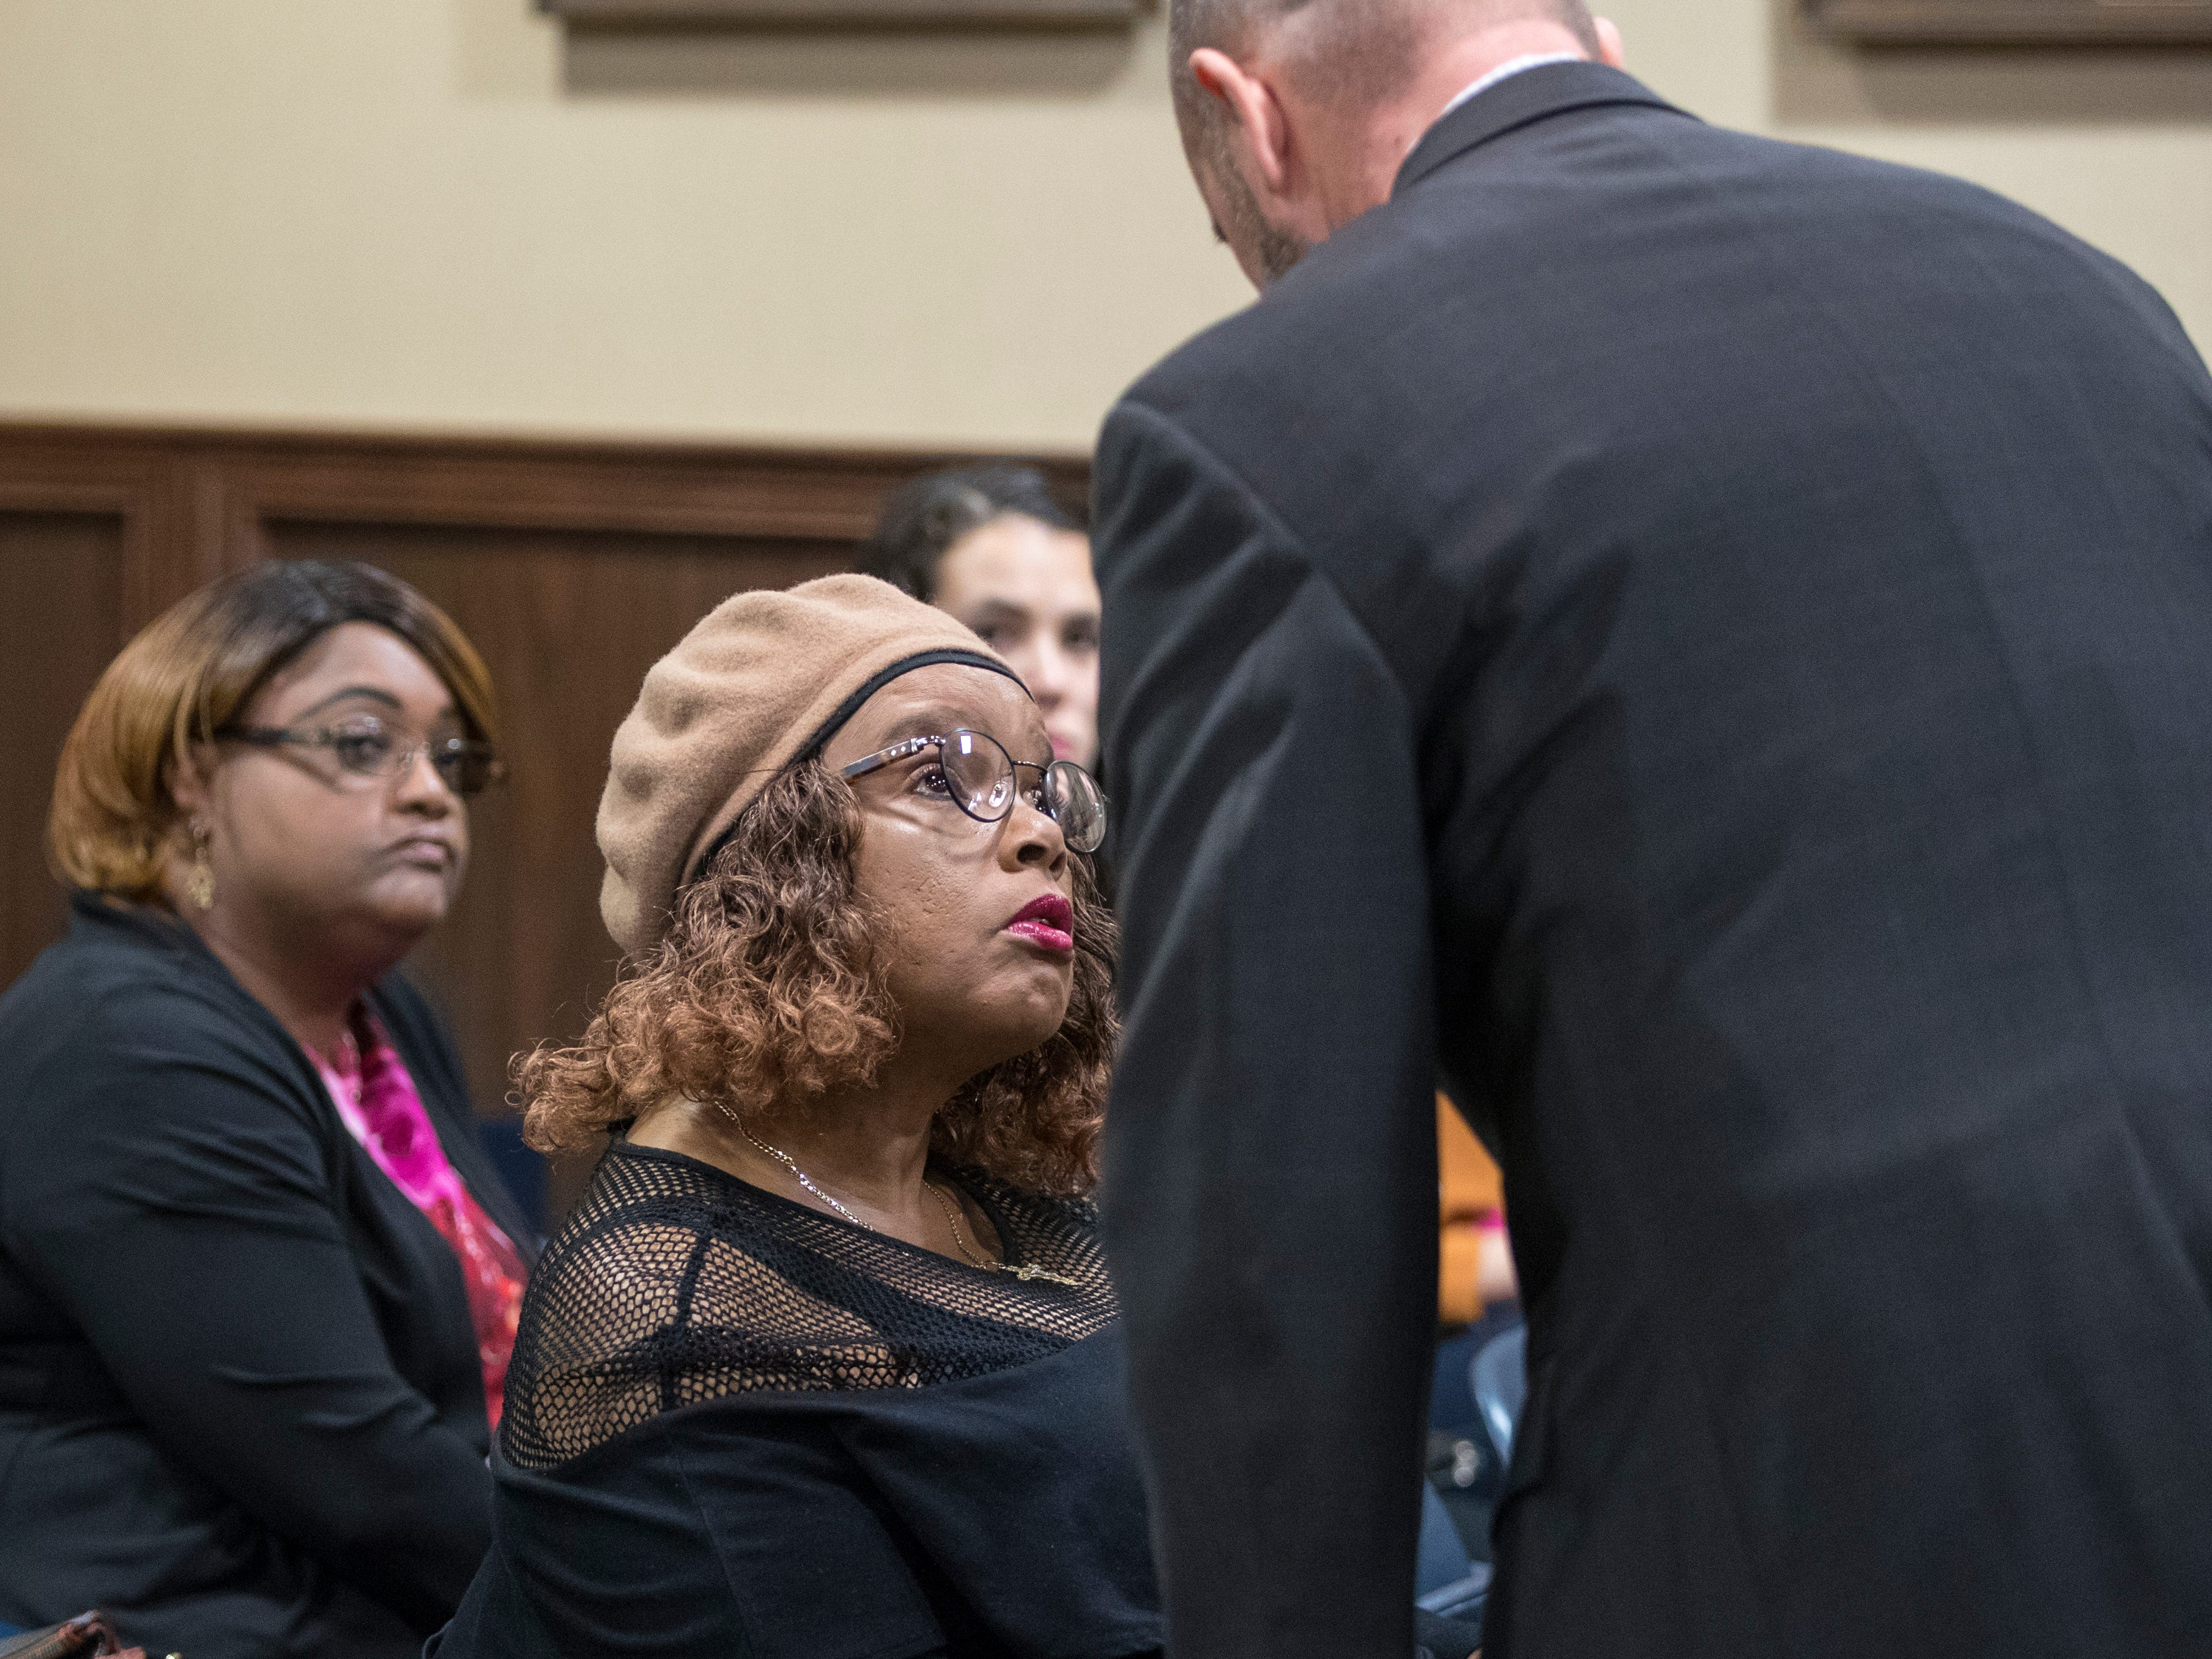 Lena Holmes, the mother of Elton Wayne Holmes, talks with defense attorney Scott Ellison before opening statements begin in the 117th District Court on Tuesday, January 9, 2018. Elton Wayne Holmes is charged with accident involving death, accident involving serious bodily injury, aggravated assault causing serious bodily injury and manslaughter in an alleged hit-and-run that left Rai-ane Garza, a King High School student dead.